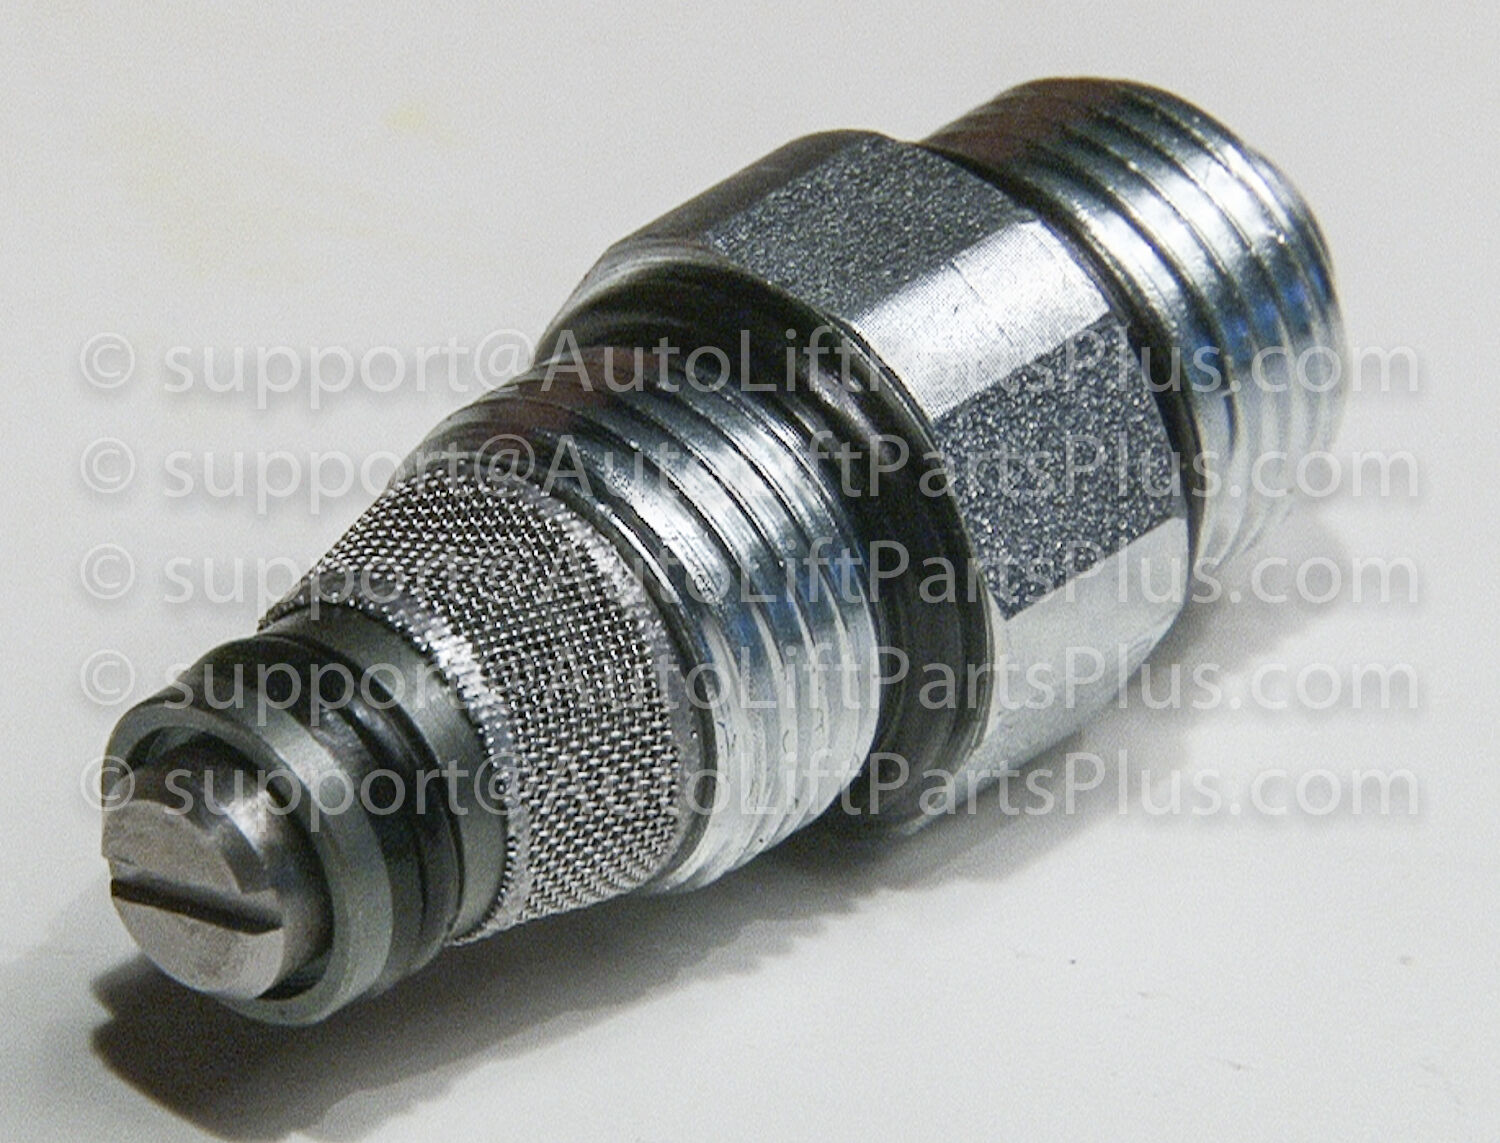 Spx Fenner Stone Lowering Valve For Auto Lift Power Units Vf 9021 Free Ship New For Sale